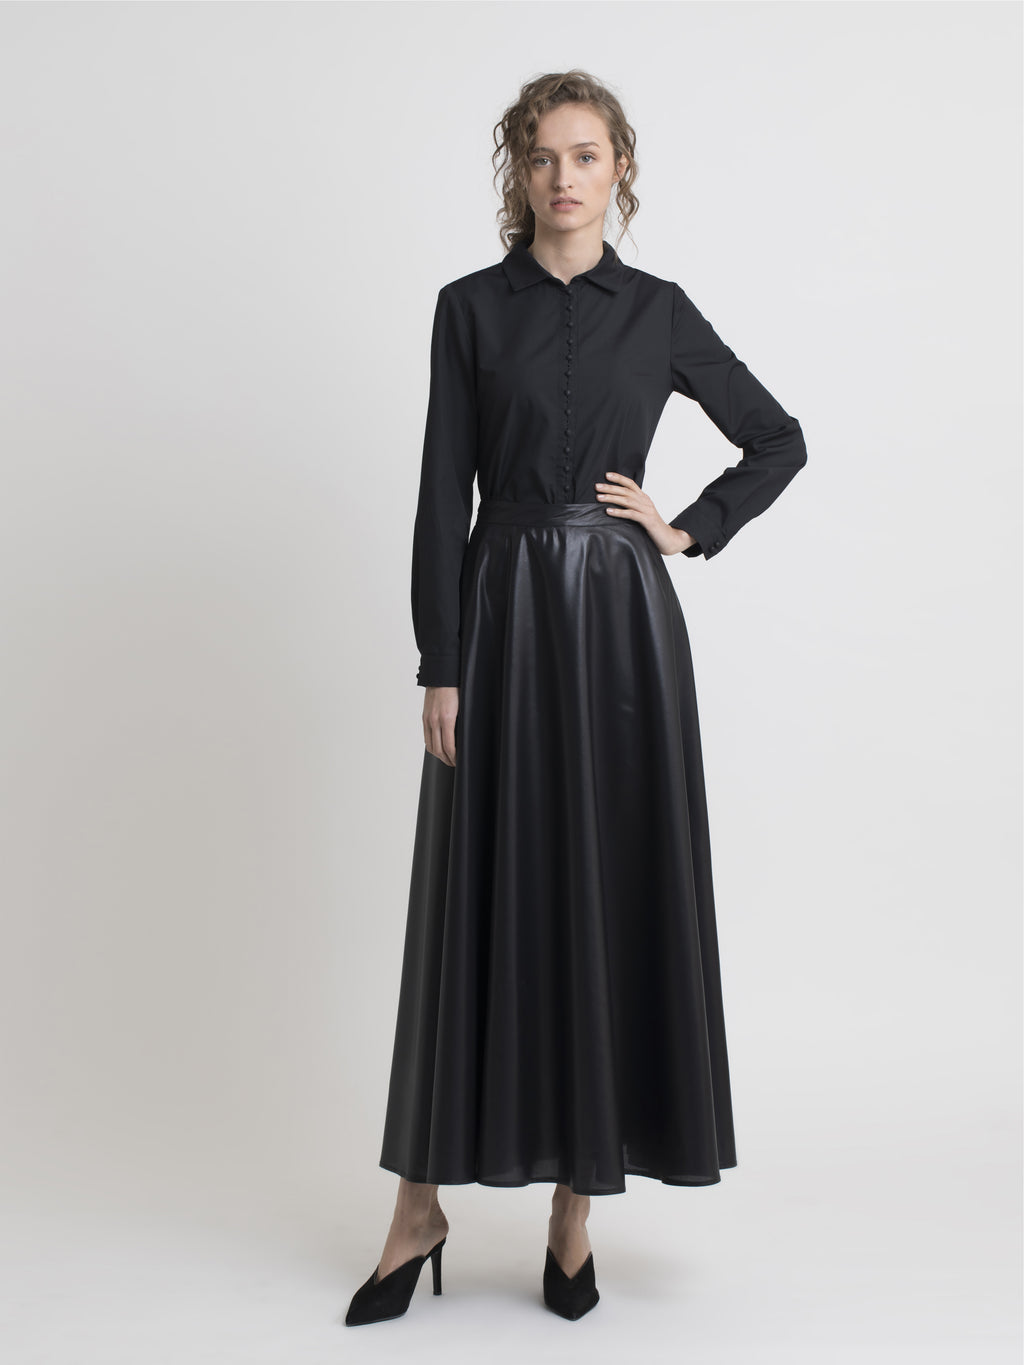 Full front view of a female model wearing high heels slip on black shoes, a black cotton dress shirt, and a long eggshell-gloss black flared skirt, from the RÉZO women's collection.